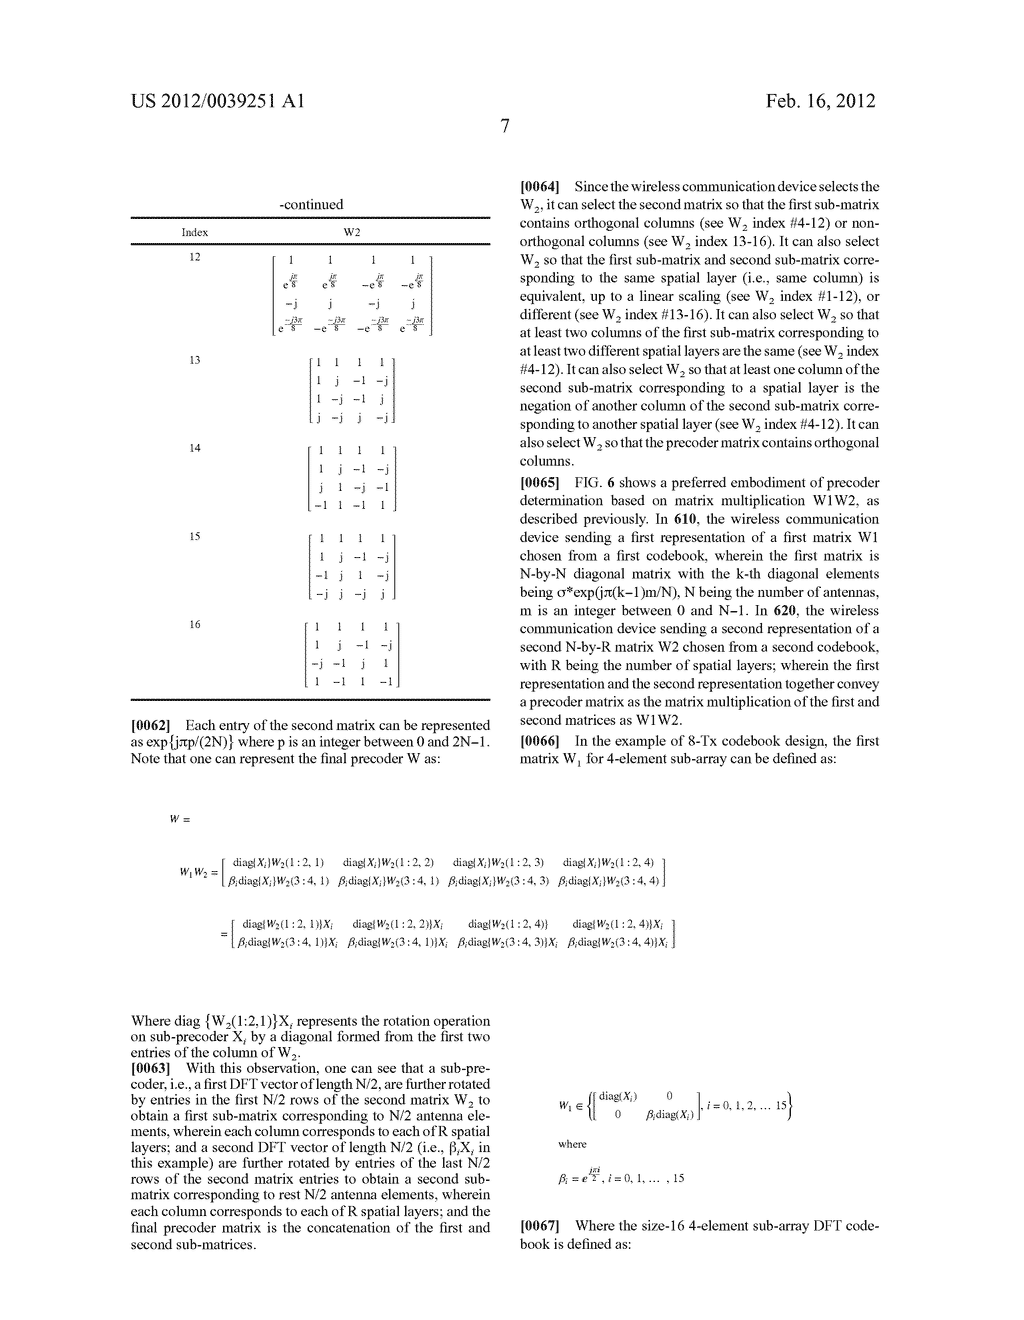 METHOD OF CODEBOOK DESIGN AND PRECODER FEEDBACK IN WIRELESS COMMUNICATION     SYSTEMS - diagram, schematic, and image 15